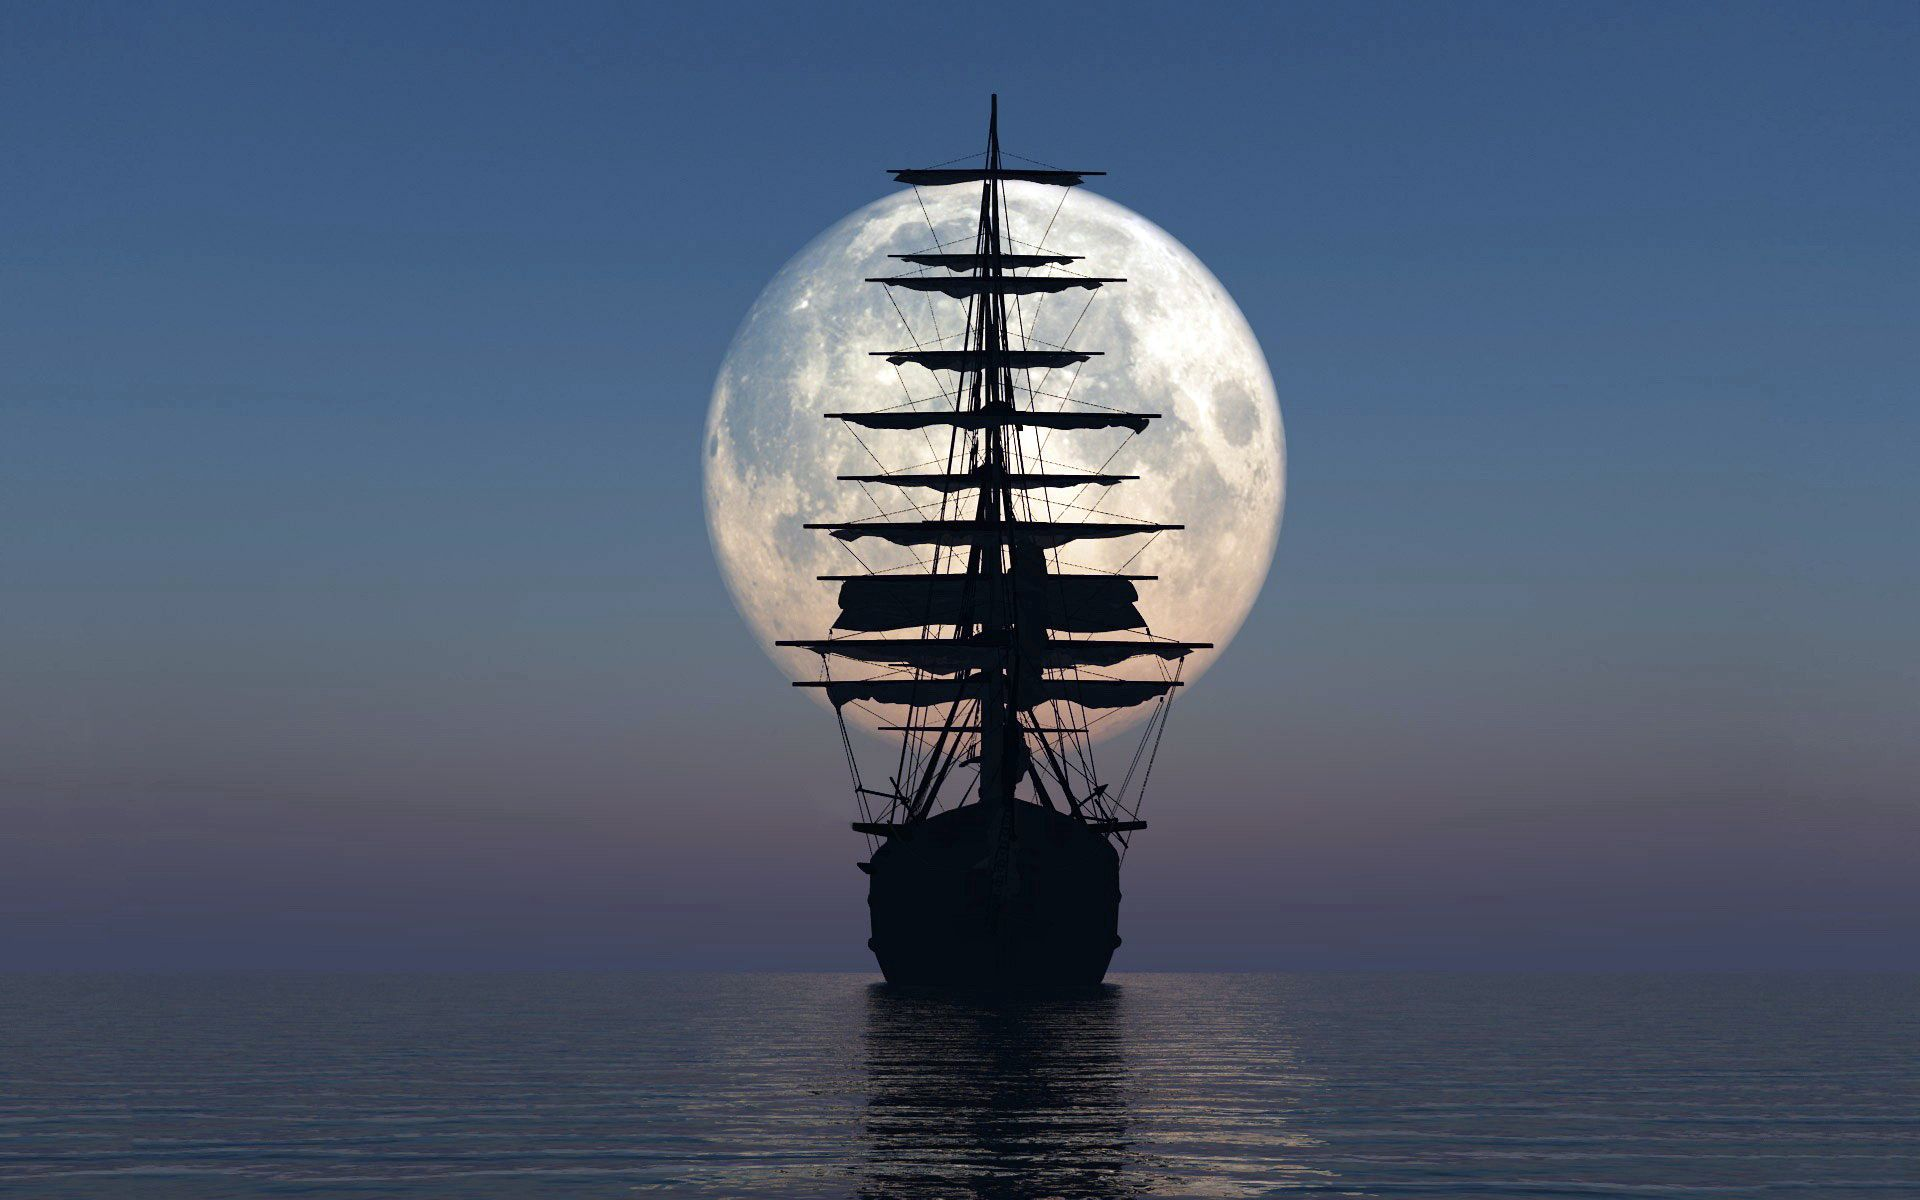 58264 download wallpaper Miscellanea, Miscellaneous, Ship, Sea, Sunset, Moon screensavers and pictures for free